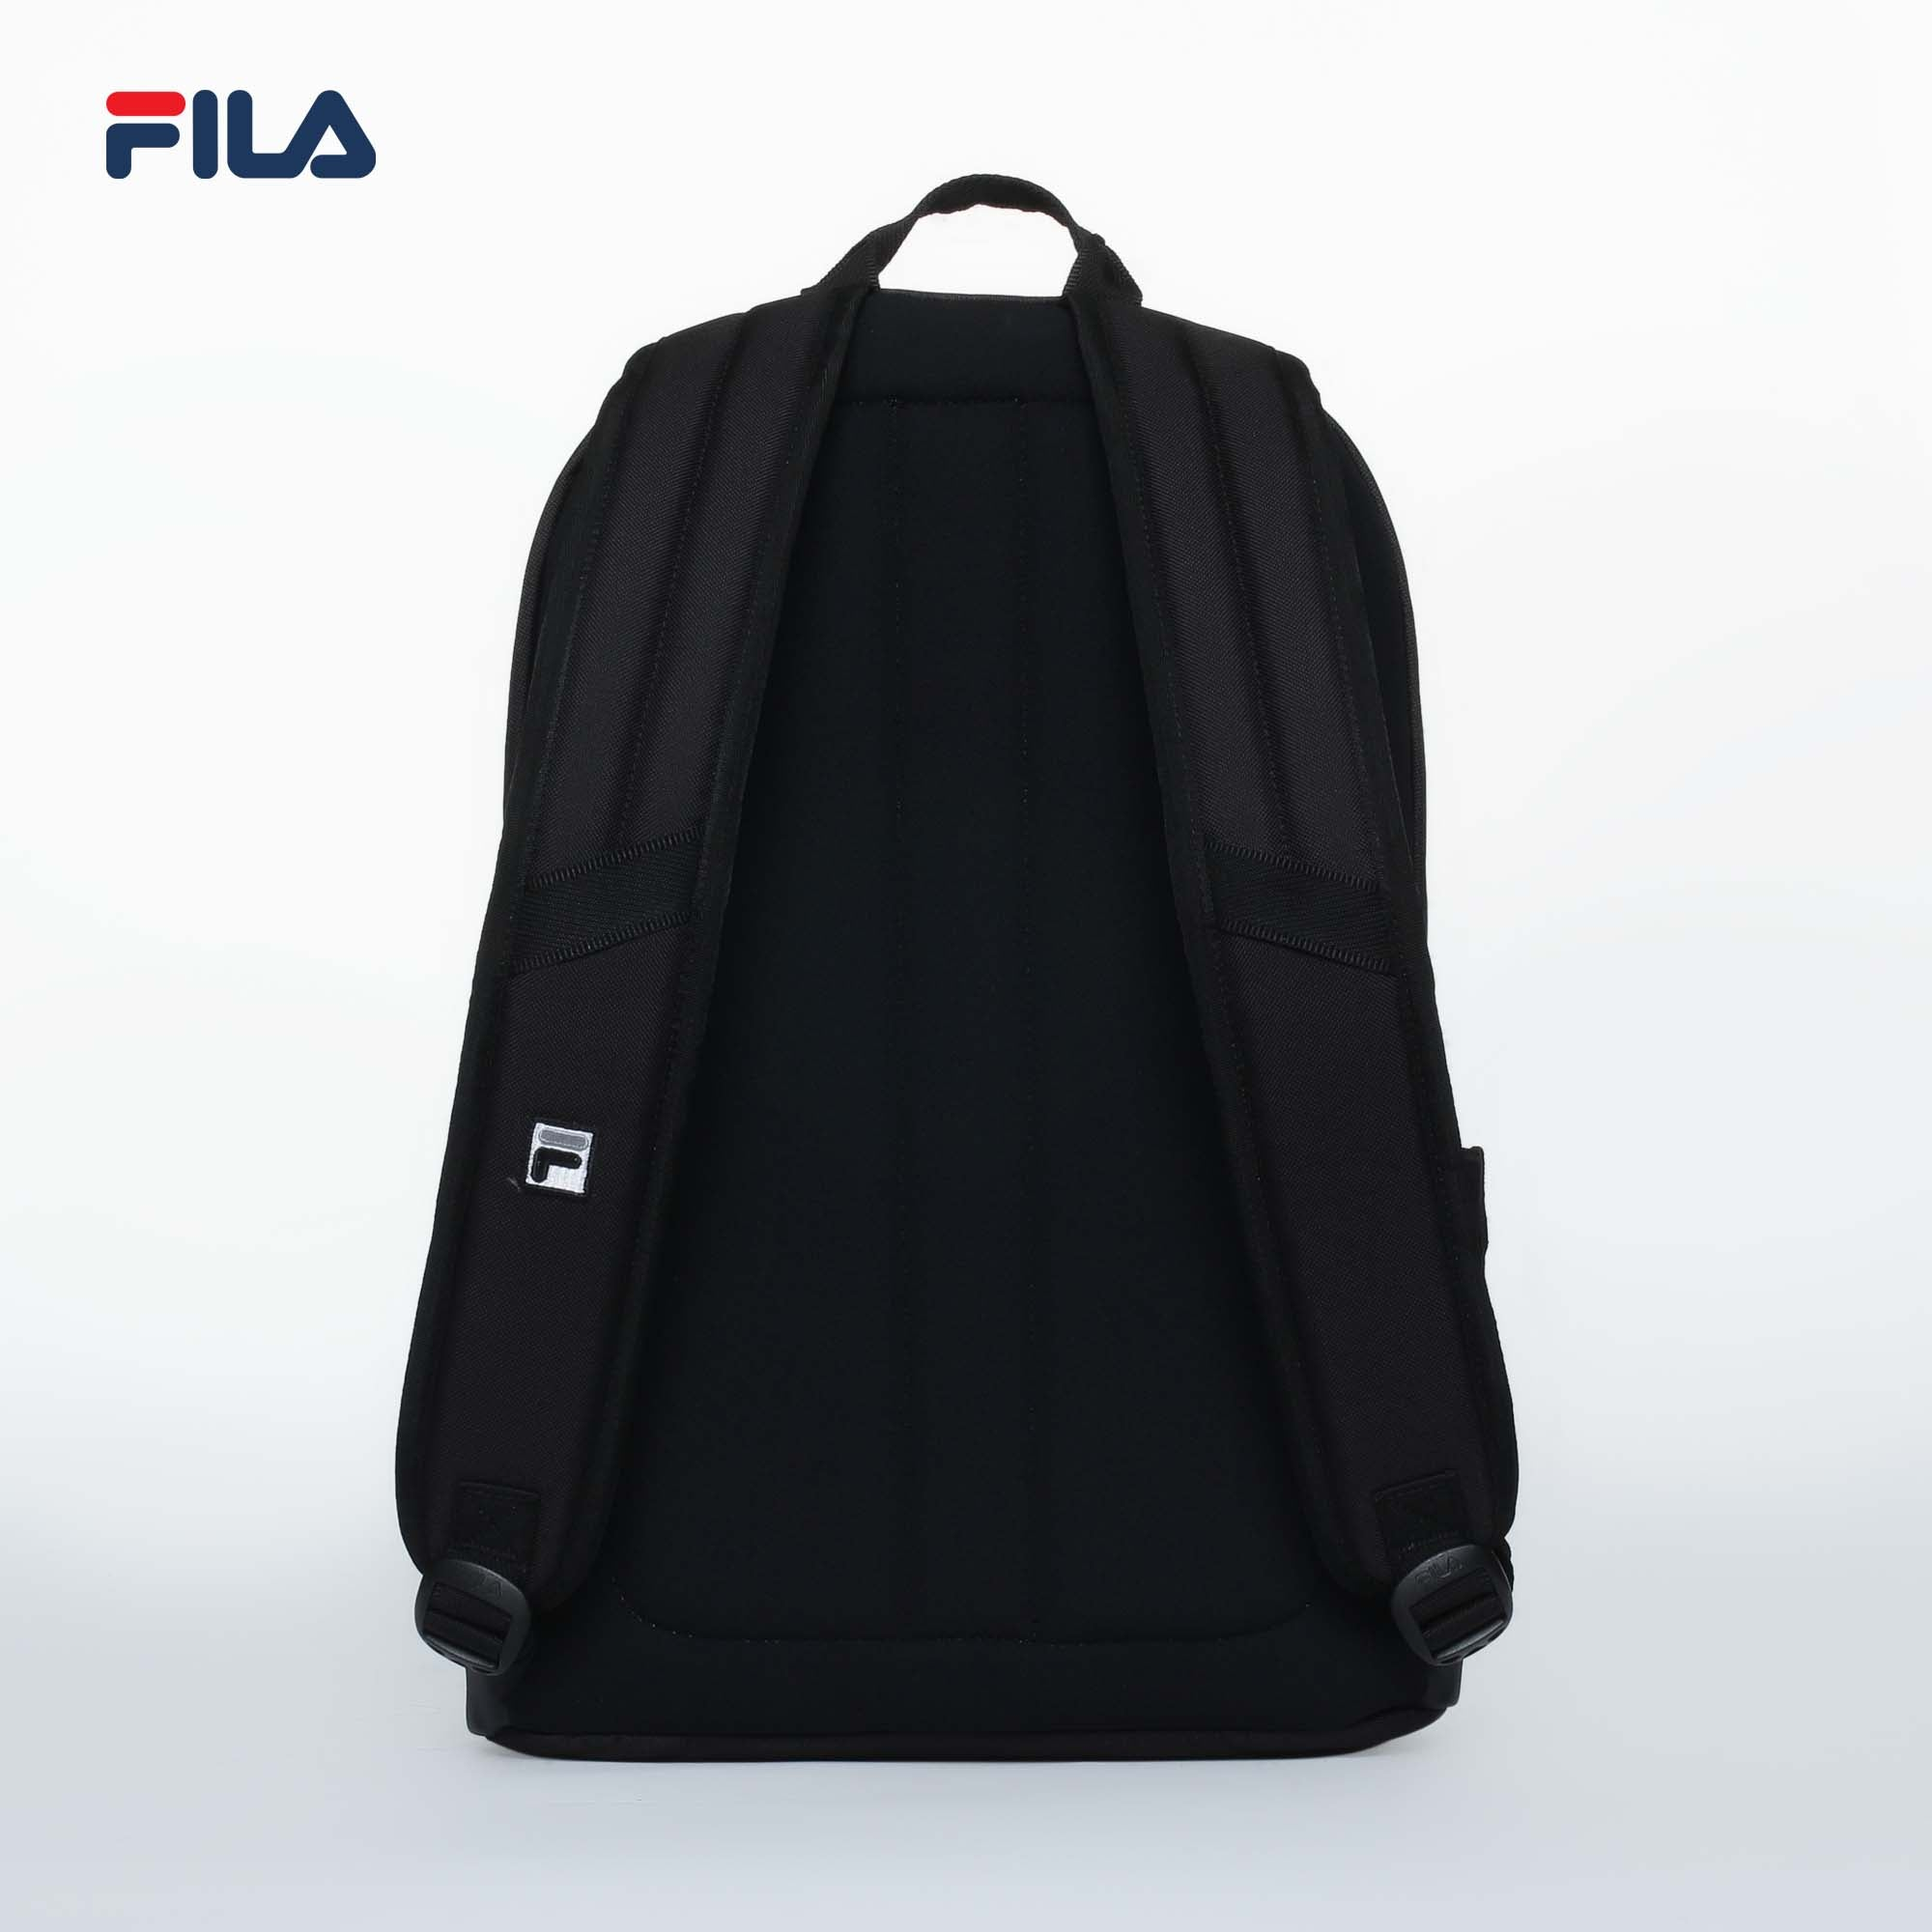 BOTTO BACKPACK FREE SIZE - BLACK